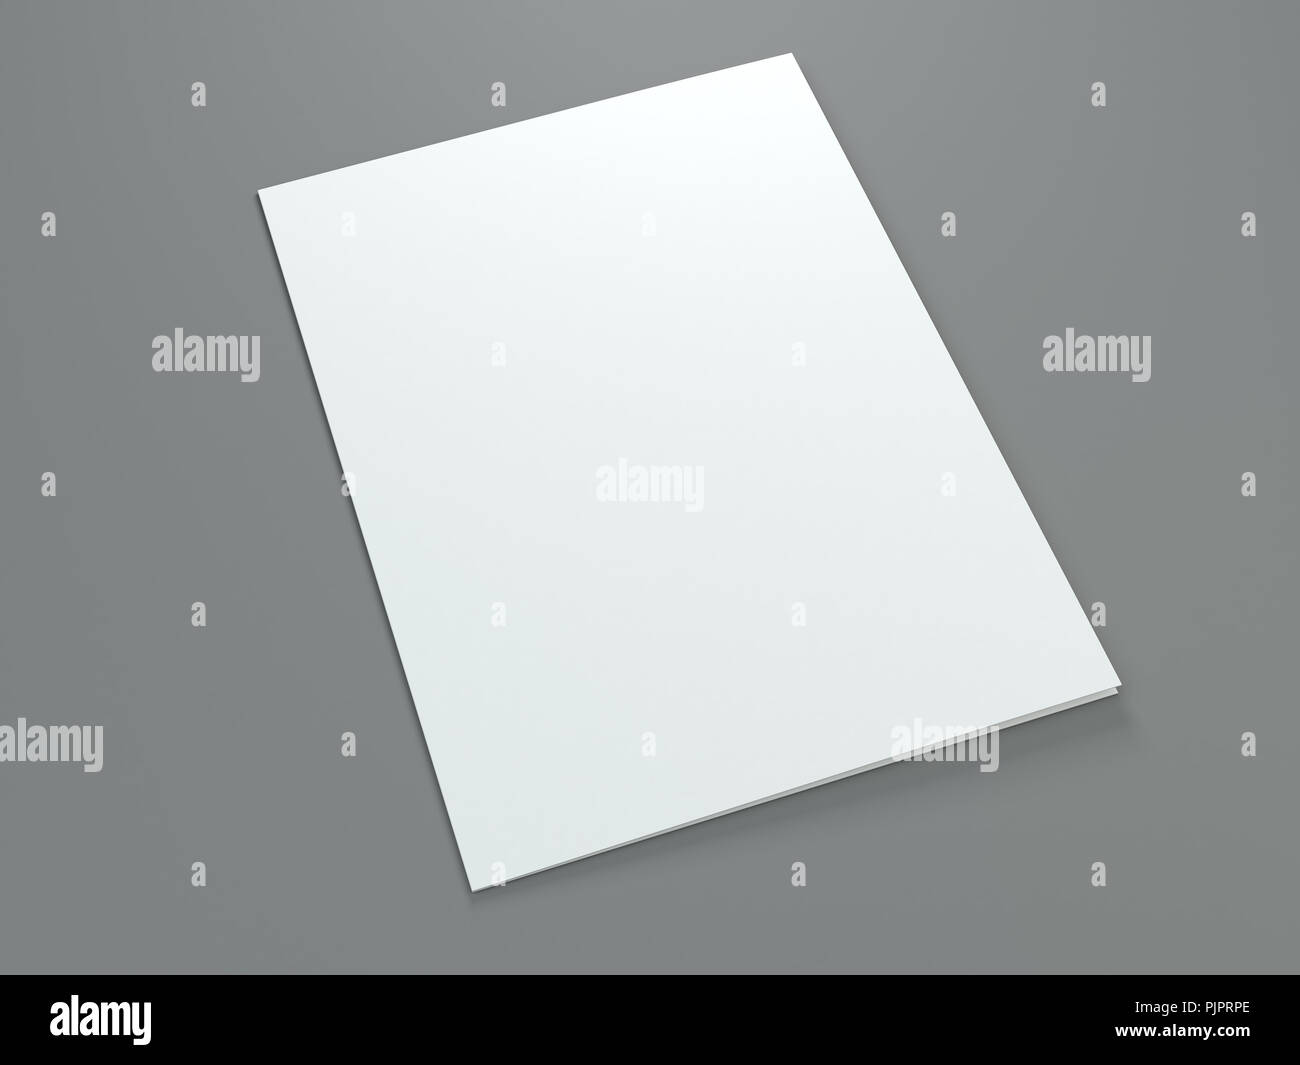 identity design corporate templates company style set of booklets